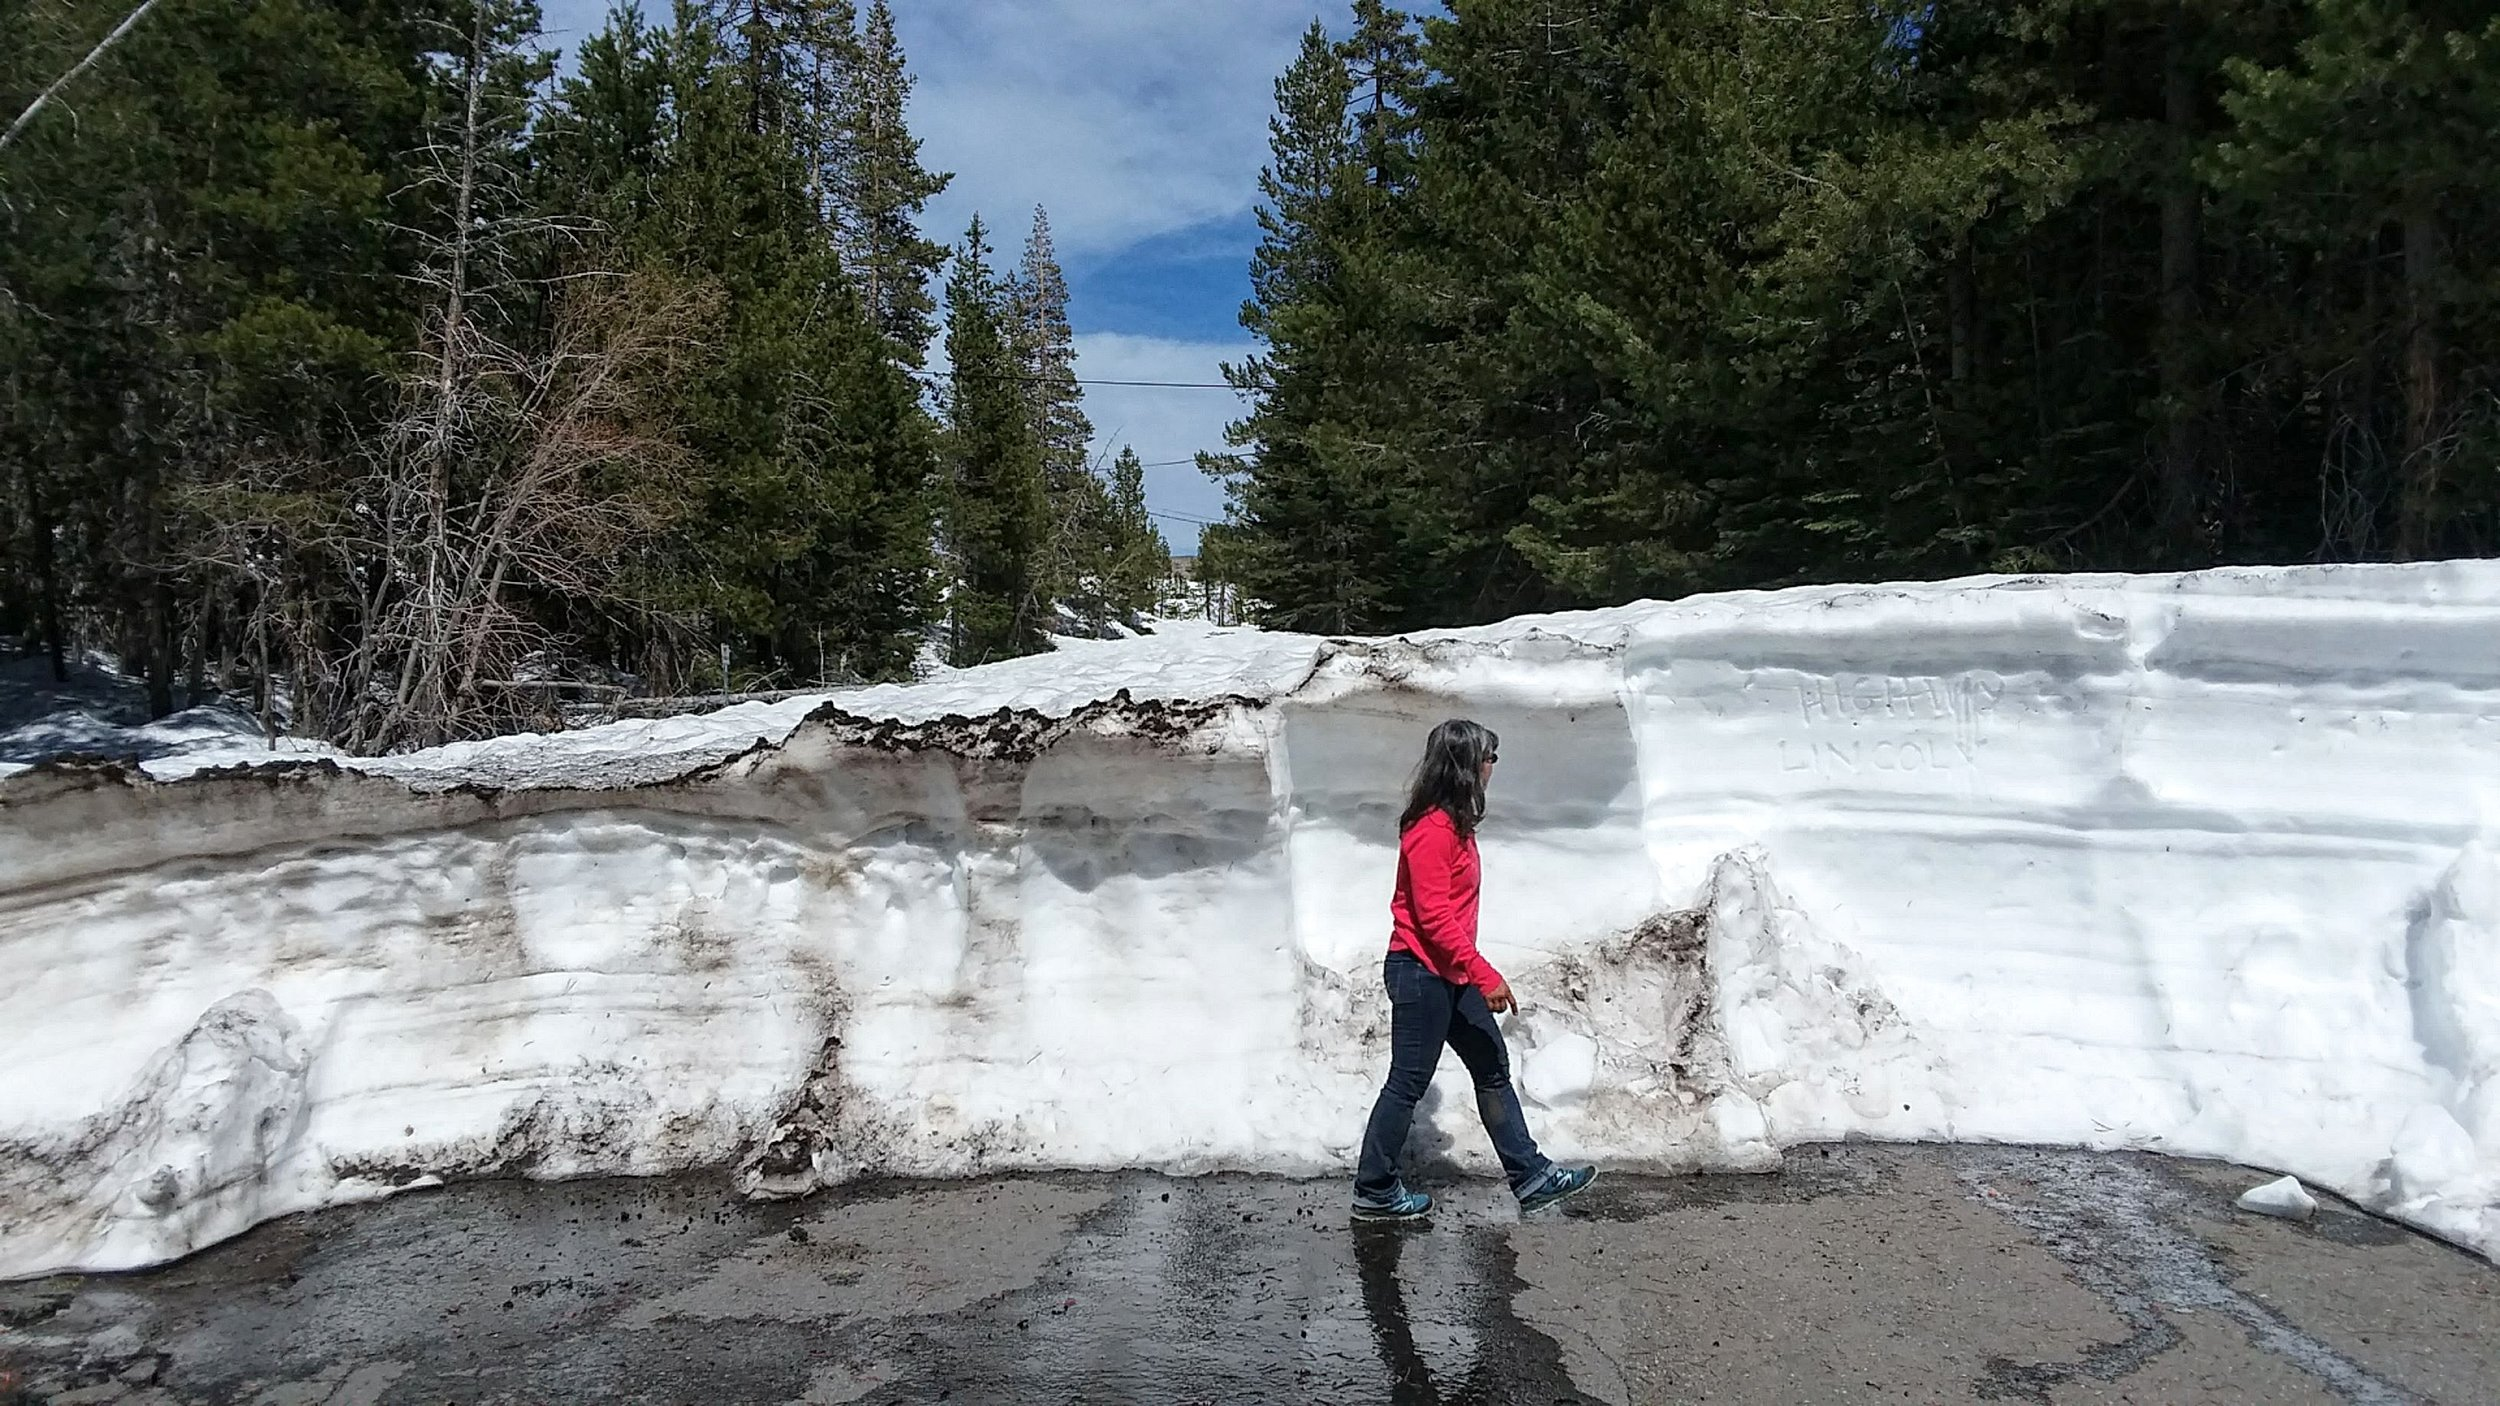 Monica at Donner Summit and the snowed in Lincoln Highway., May 2019